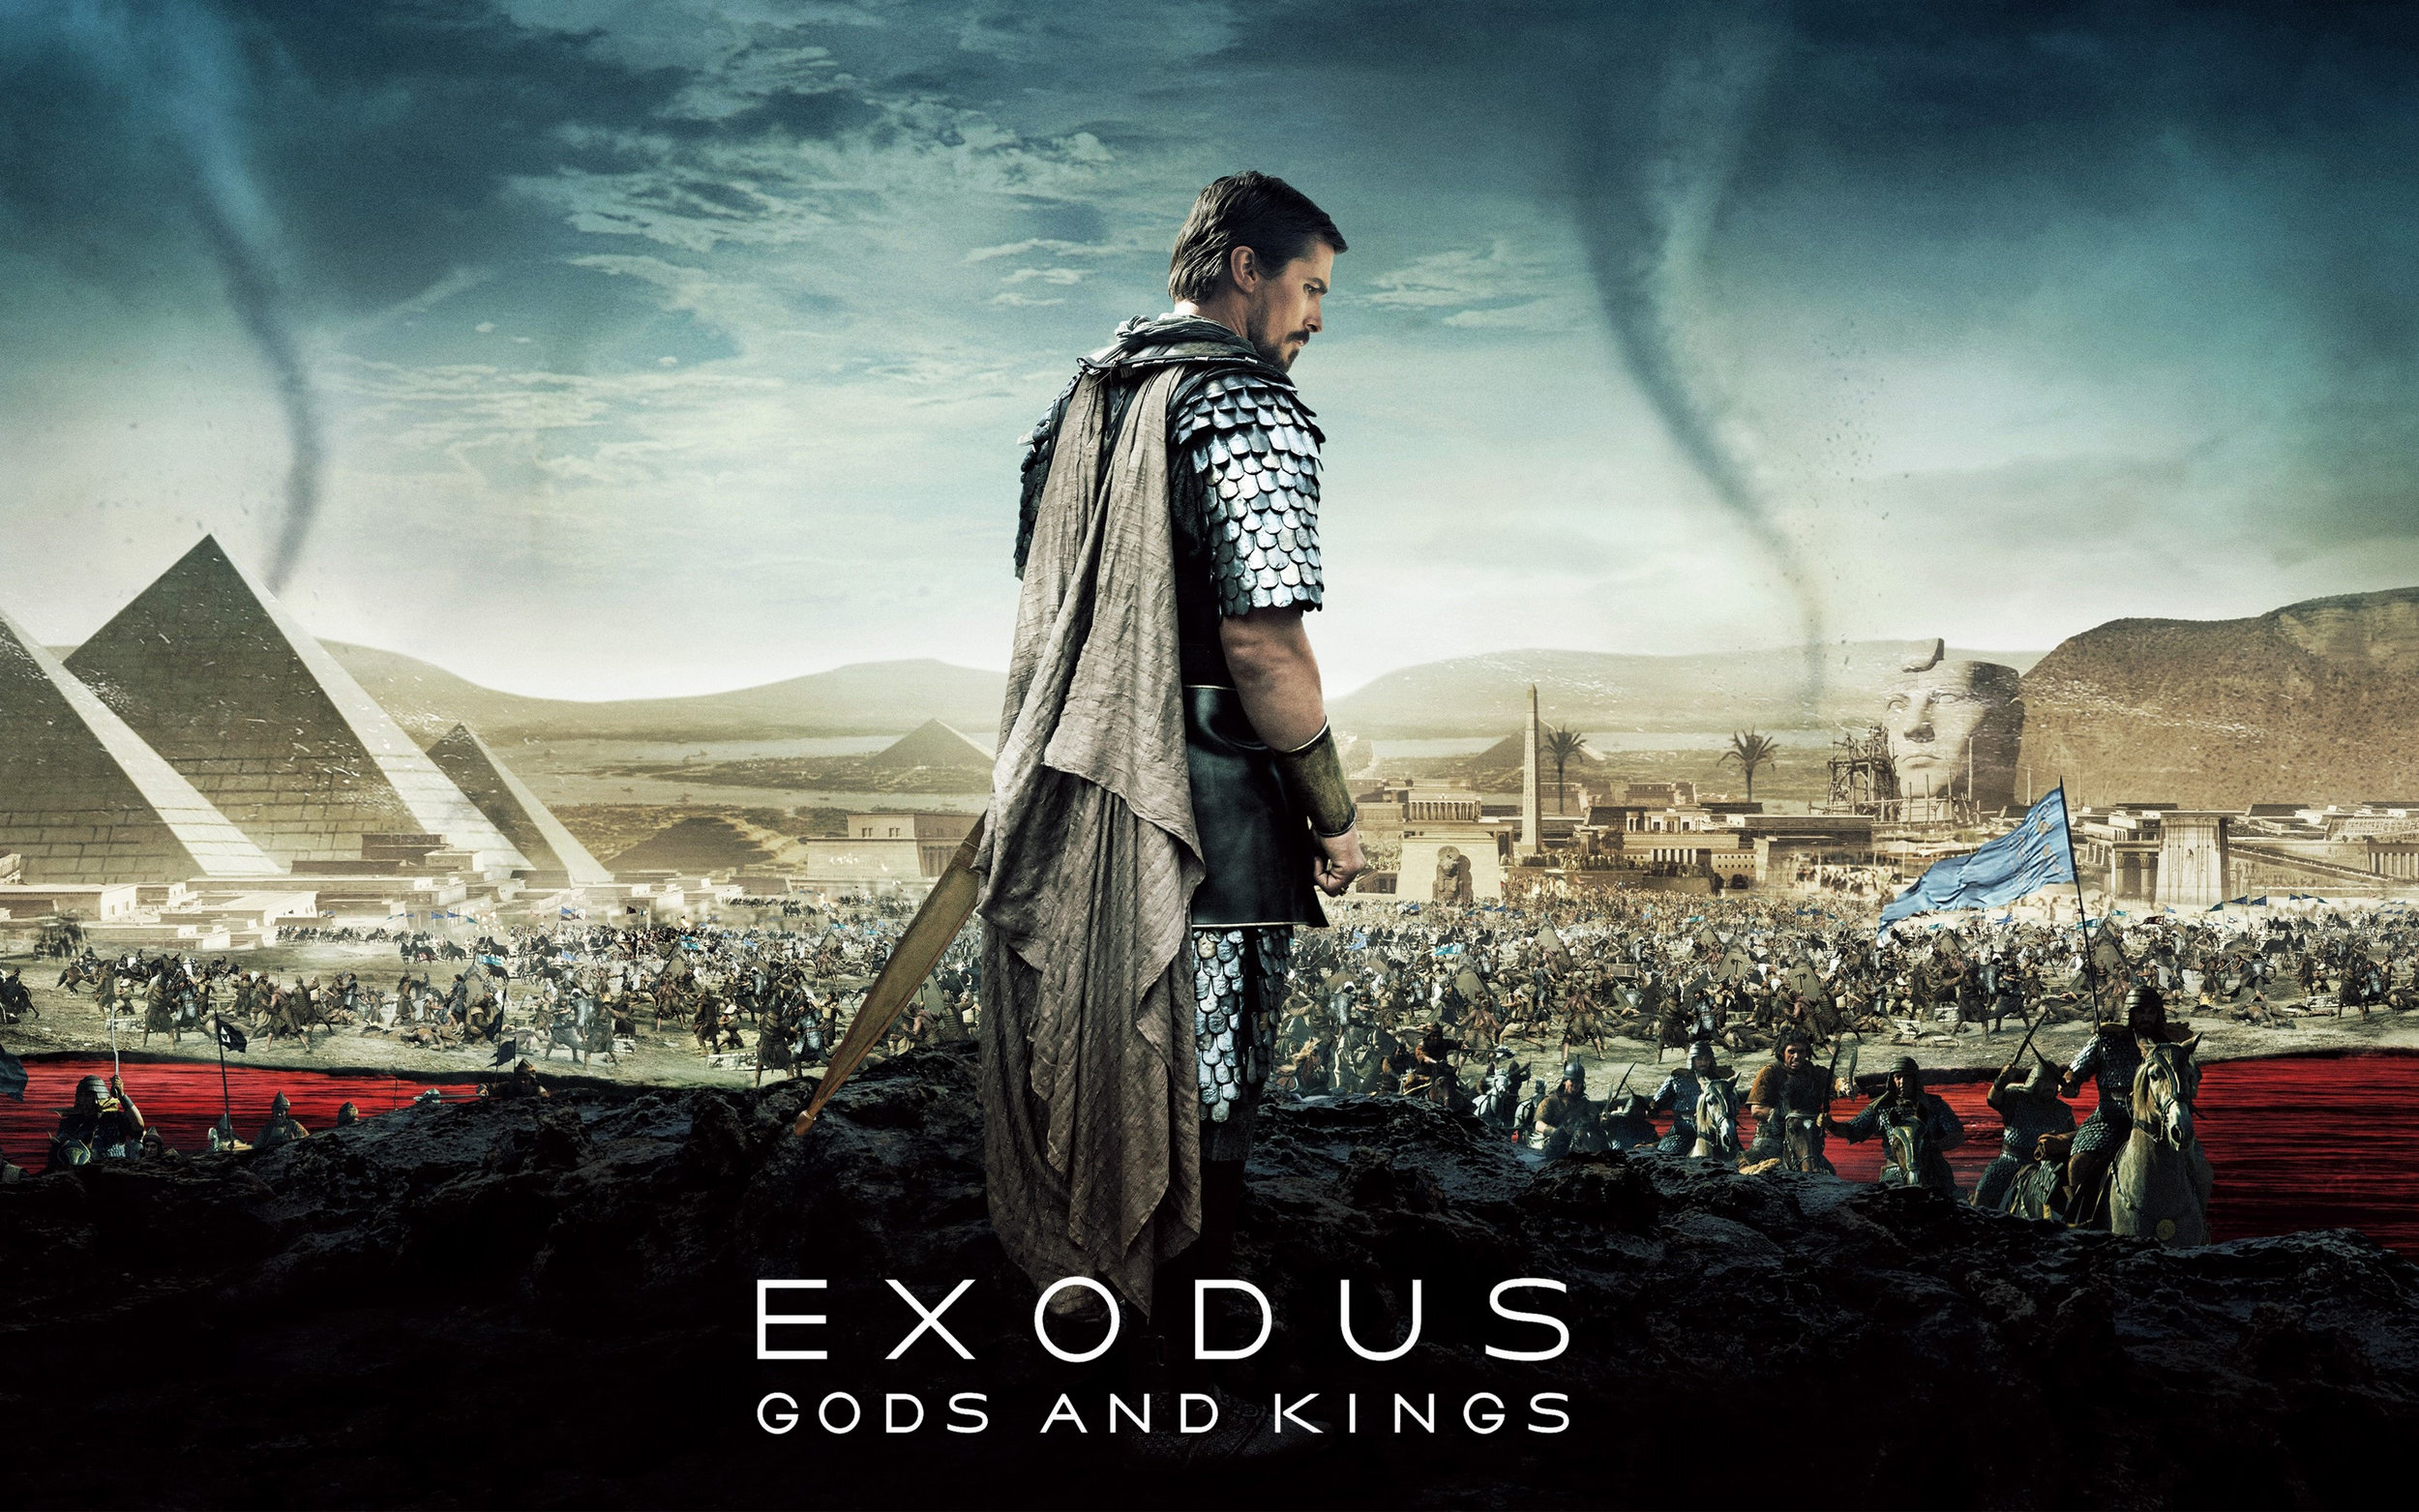 exodus_gods_and_kings_movie-wide.jpg